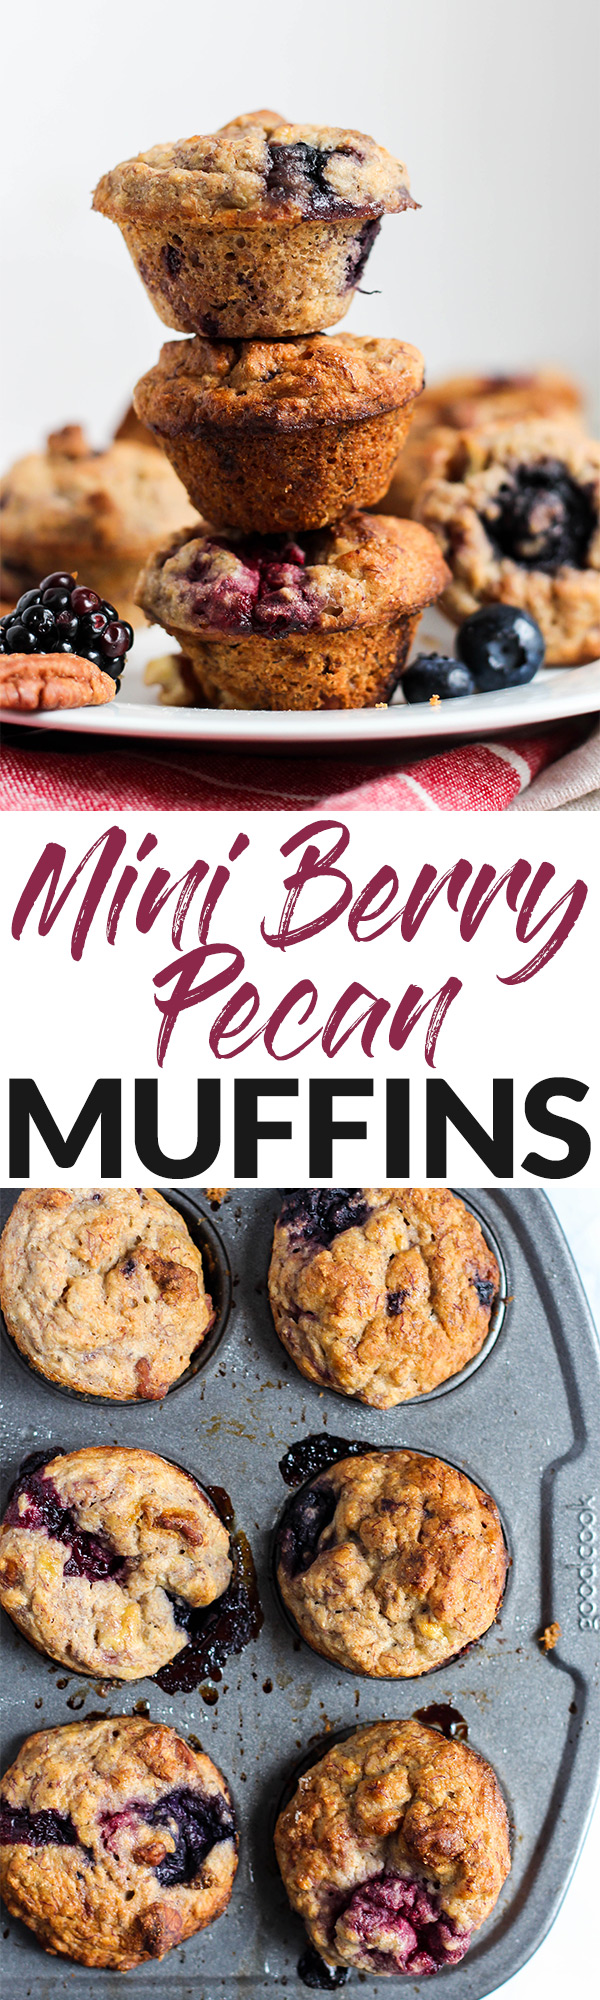 Adorable mini blueberry pecan muffins - perfect for breakfast or snacking! | The Real Life RD